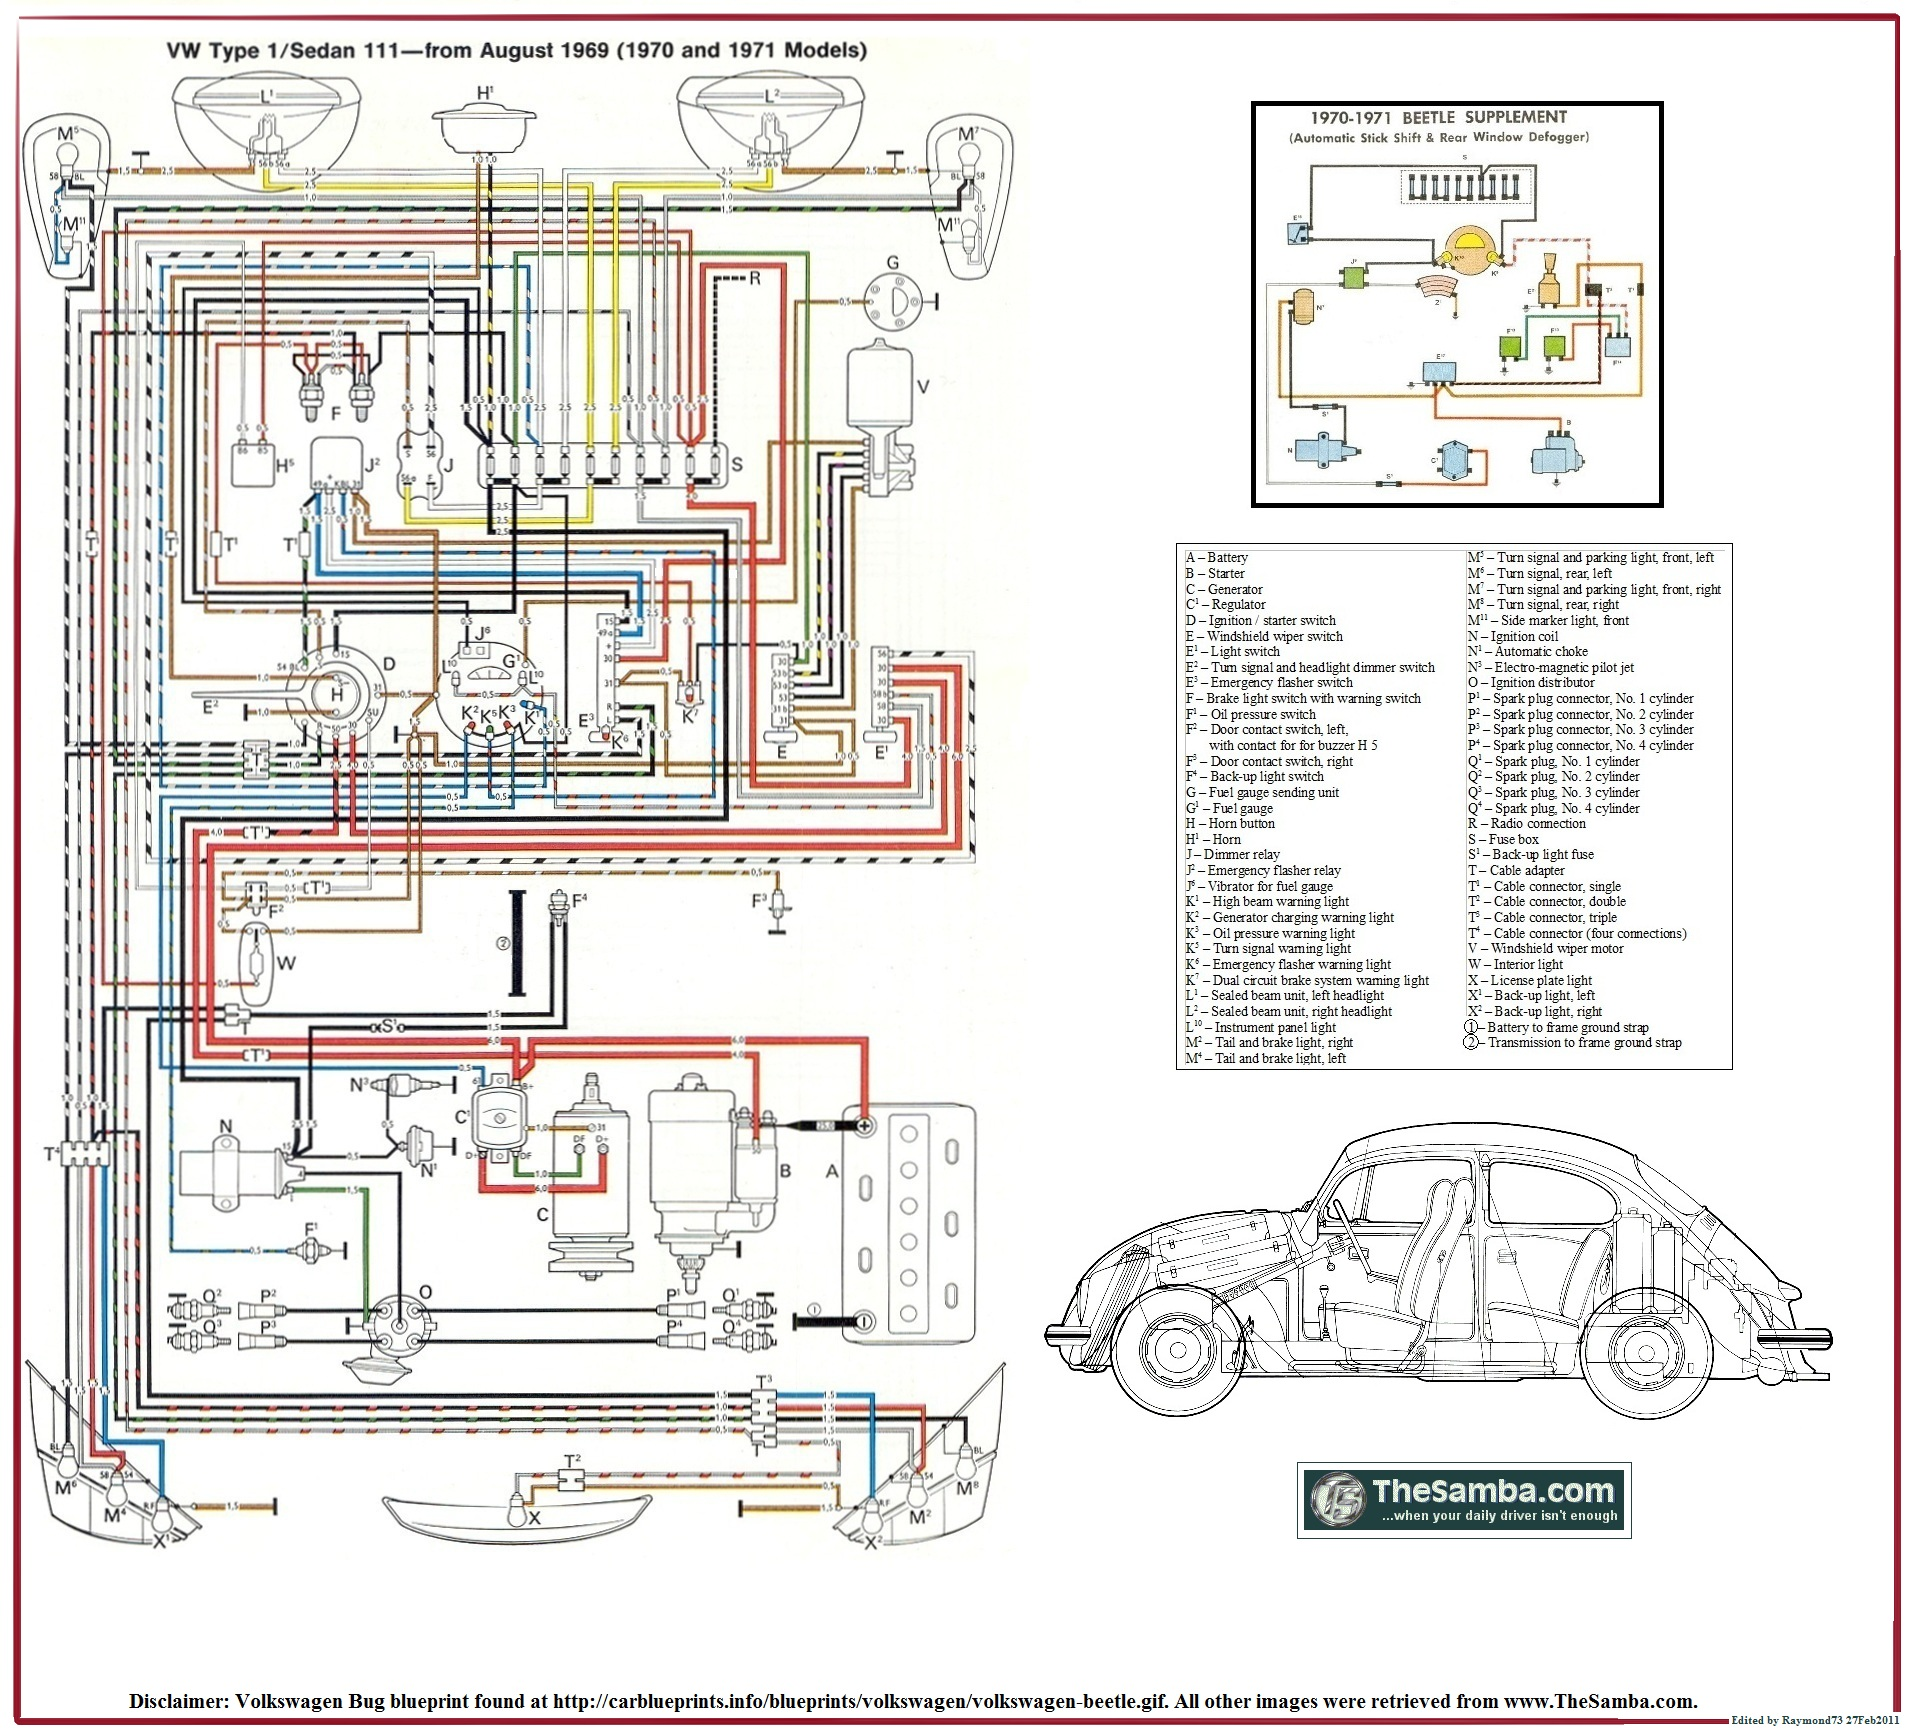 1970_VW_Type_1_Poster 1970 beetle wiring schematic yamaha motorcycle wiring diagrams 1970 vw beetle wiring diagram at n-0.co